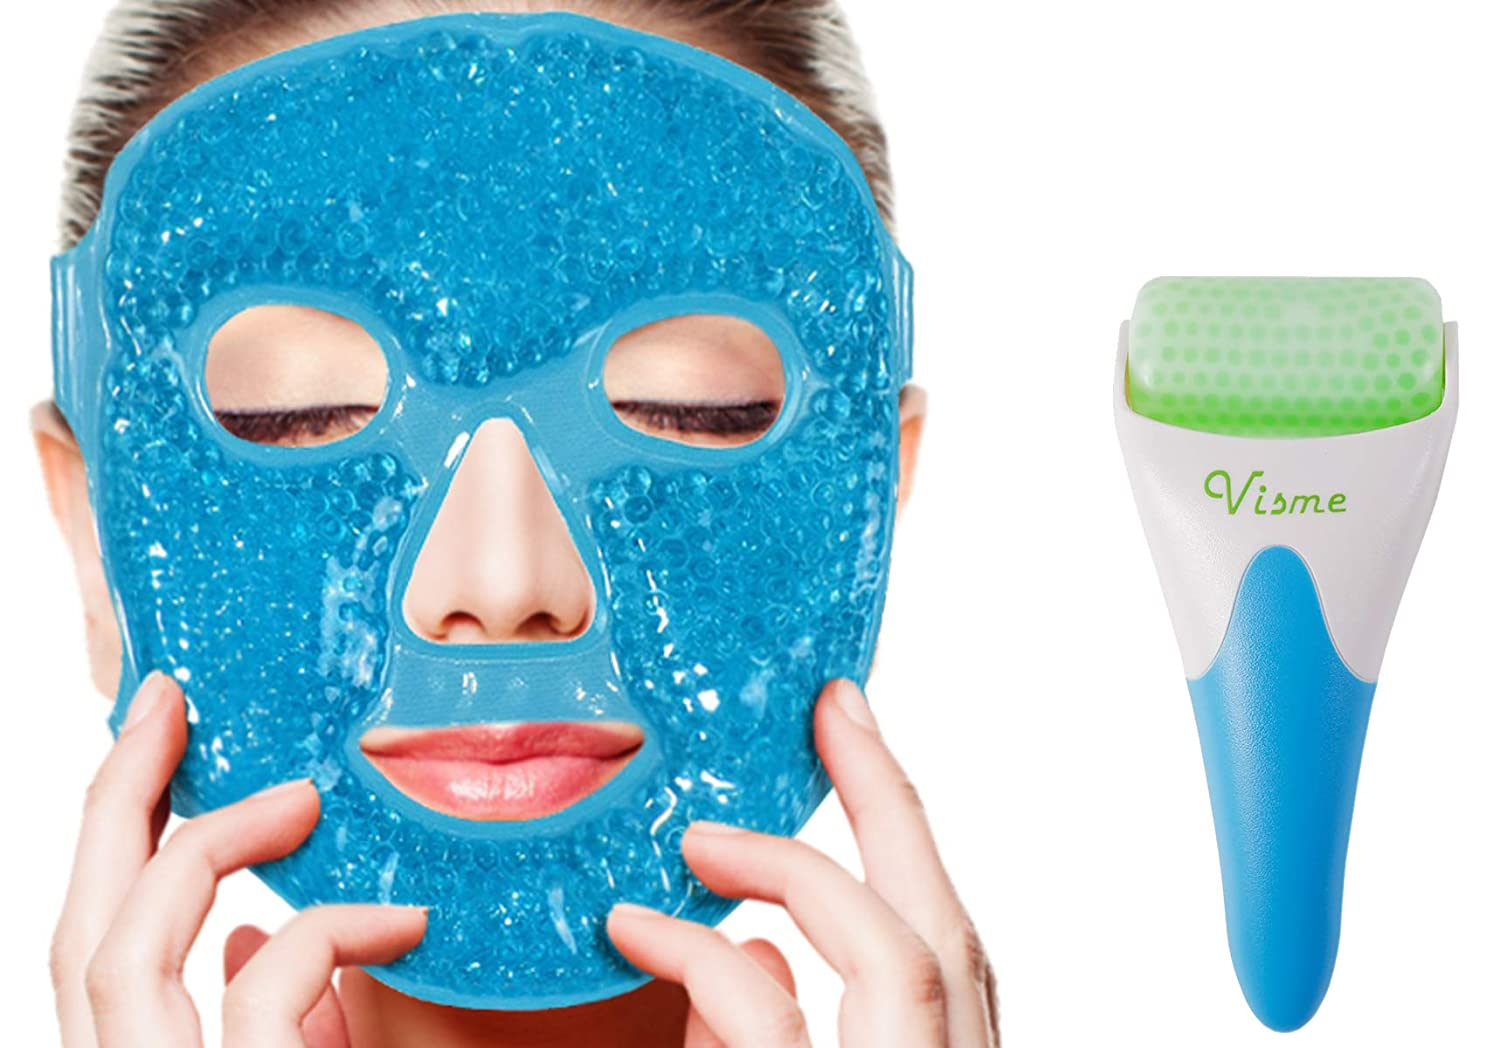 Face Ficial Jade Ice Roller – Gel Eye Mask Cold Reusable Therapy With Cooling Ice Roller Anti Wrinkle Gua Sha Tool for Face & Eye Puffiness Migraine Pain Relief Facial Massager Treatment Gif for Women